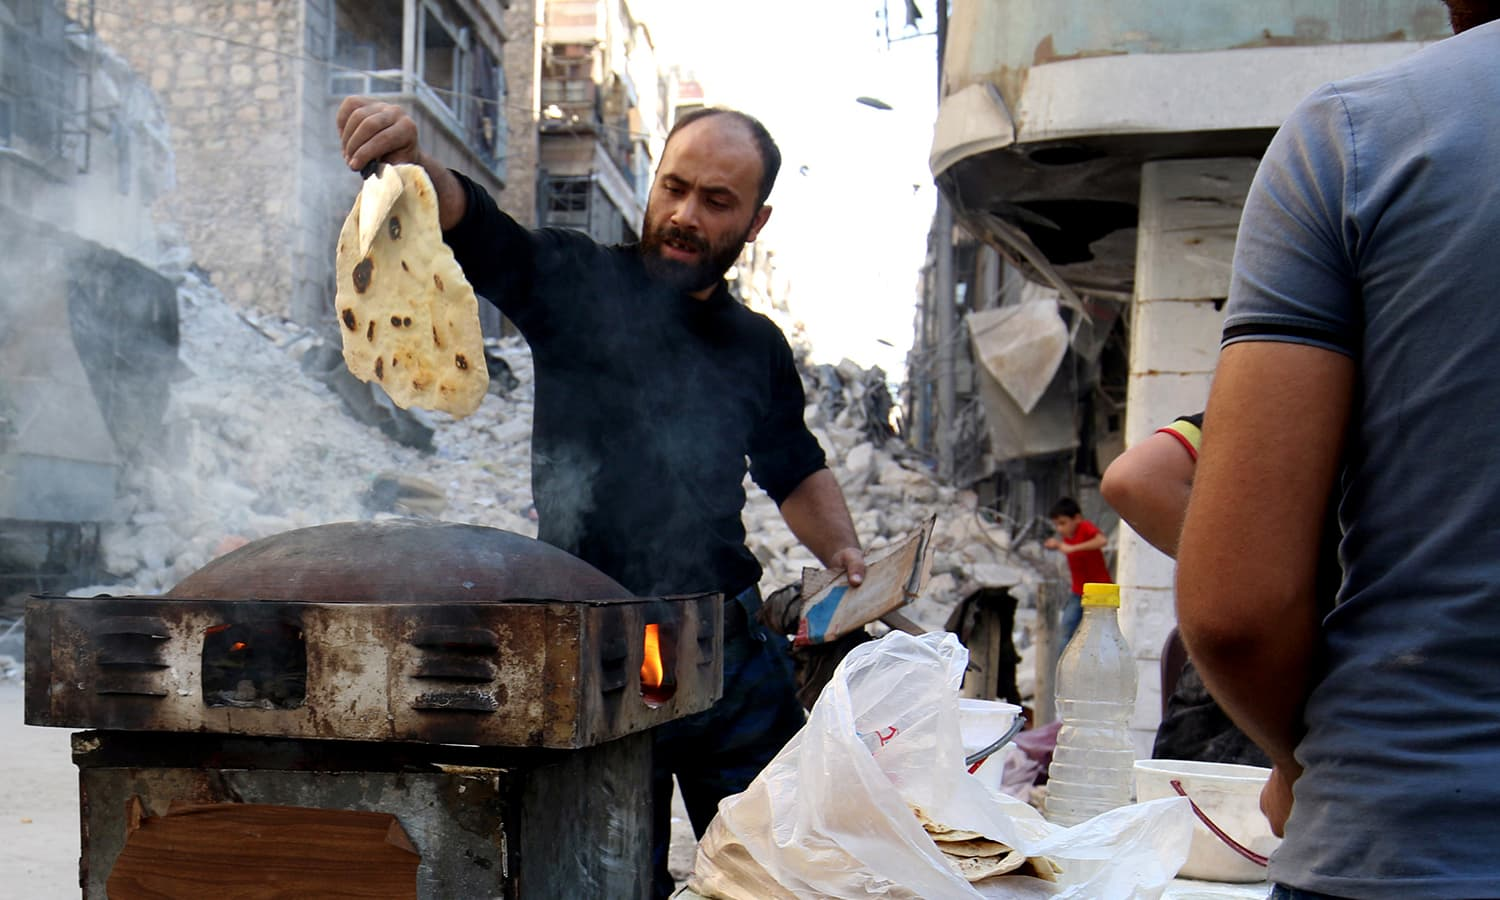 A man makes bread in the beseiged rebel held area of Aleppo, Syria October 8, 2016. ─ Reuters